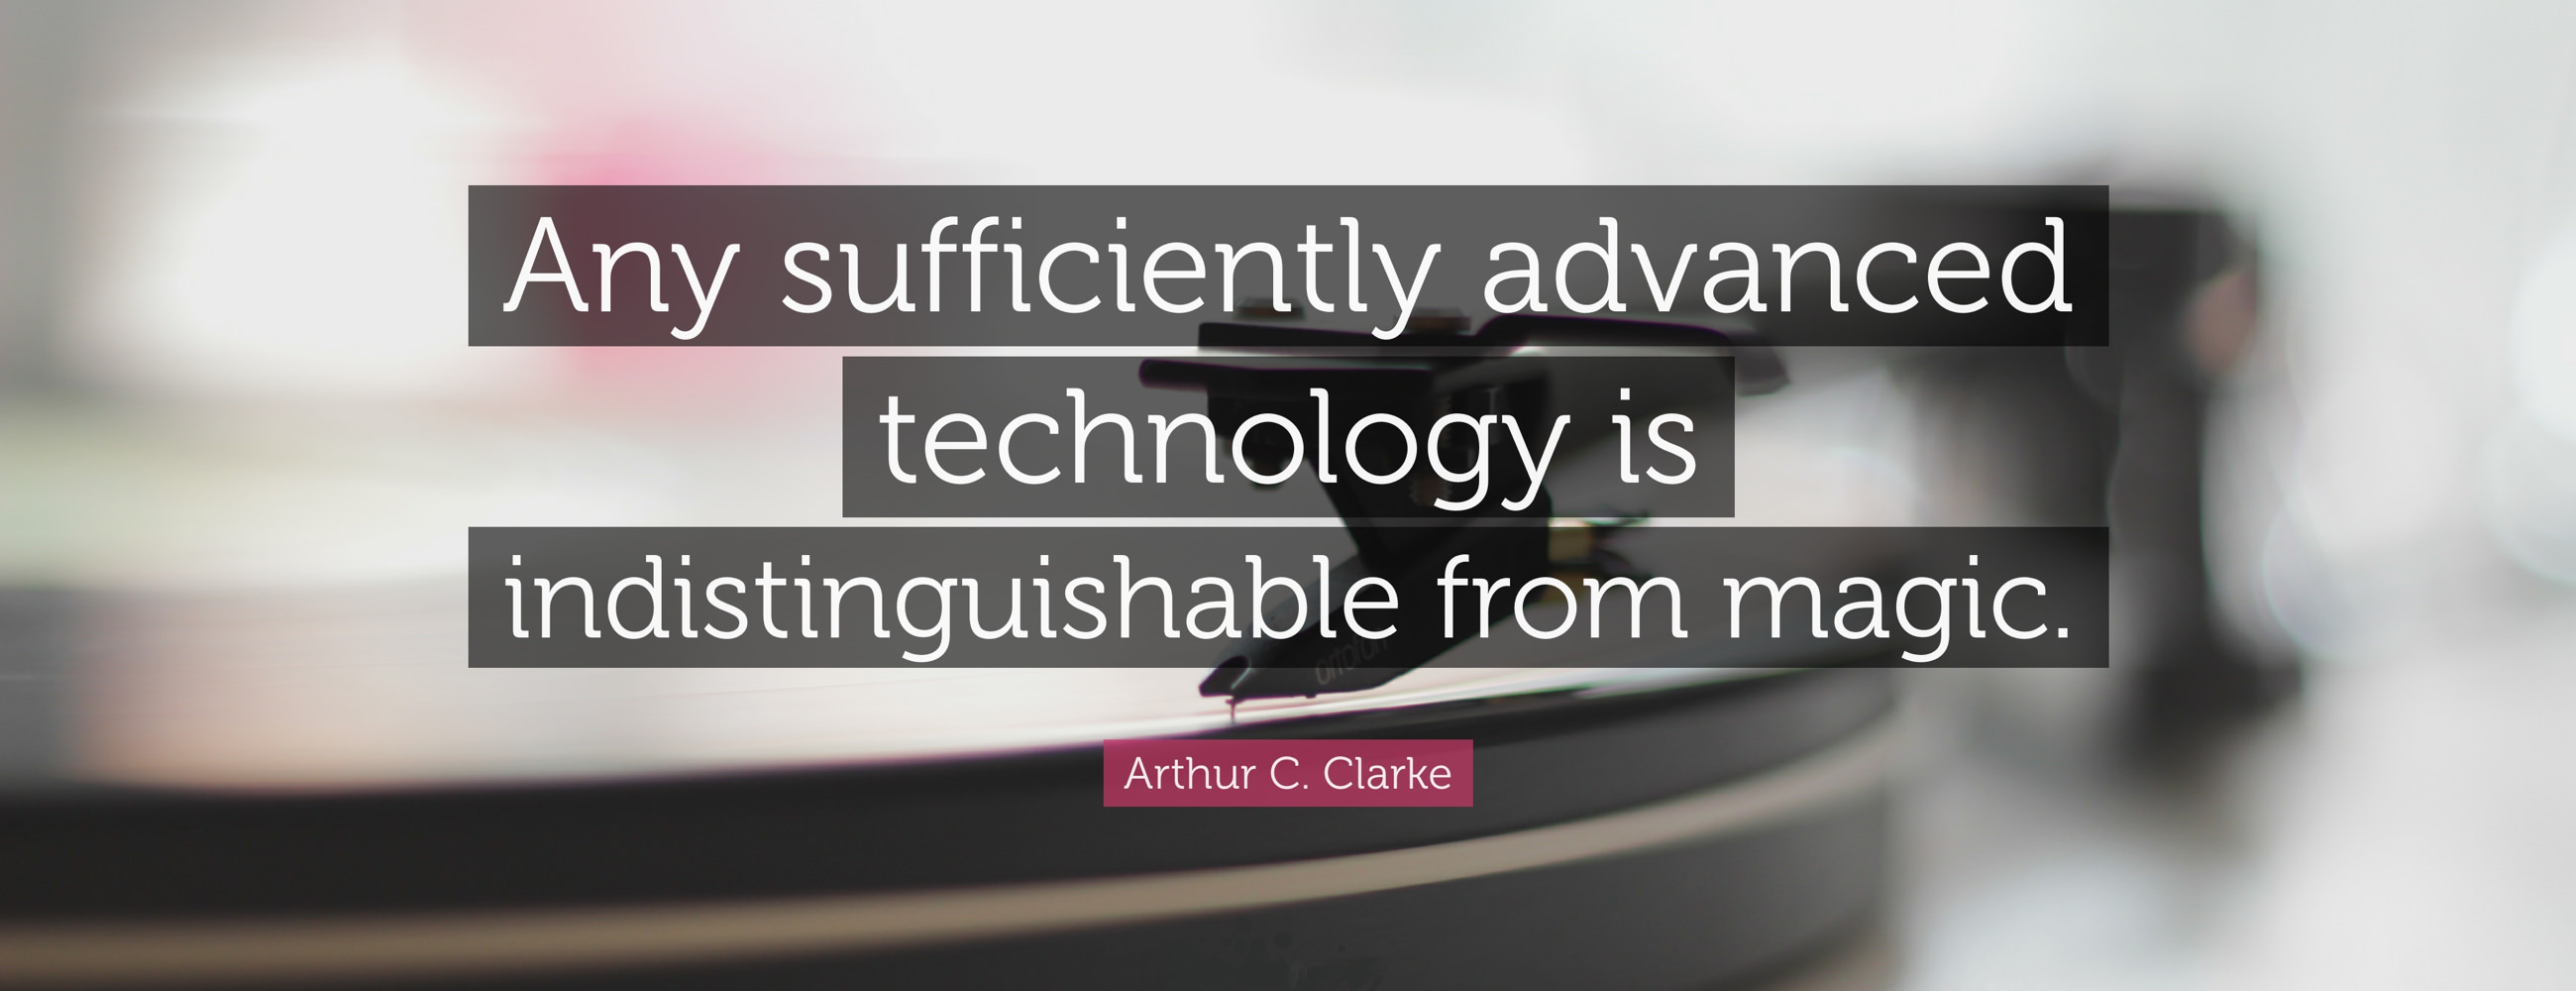 Any Sufficiently Advanced Technology …